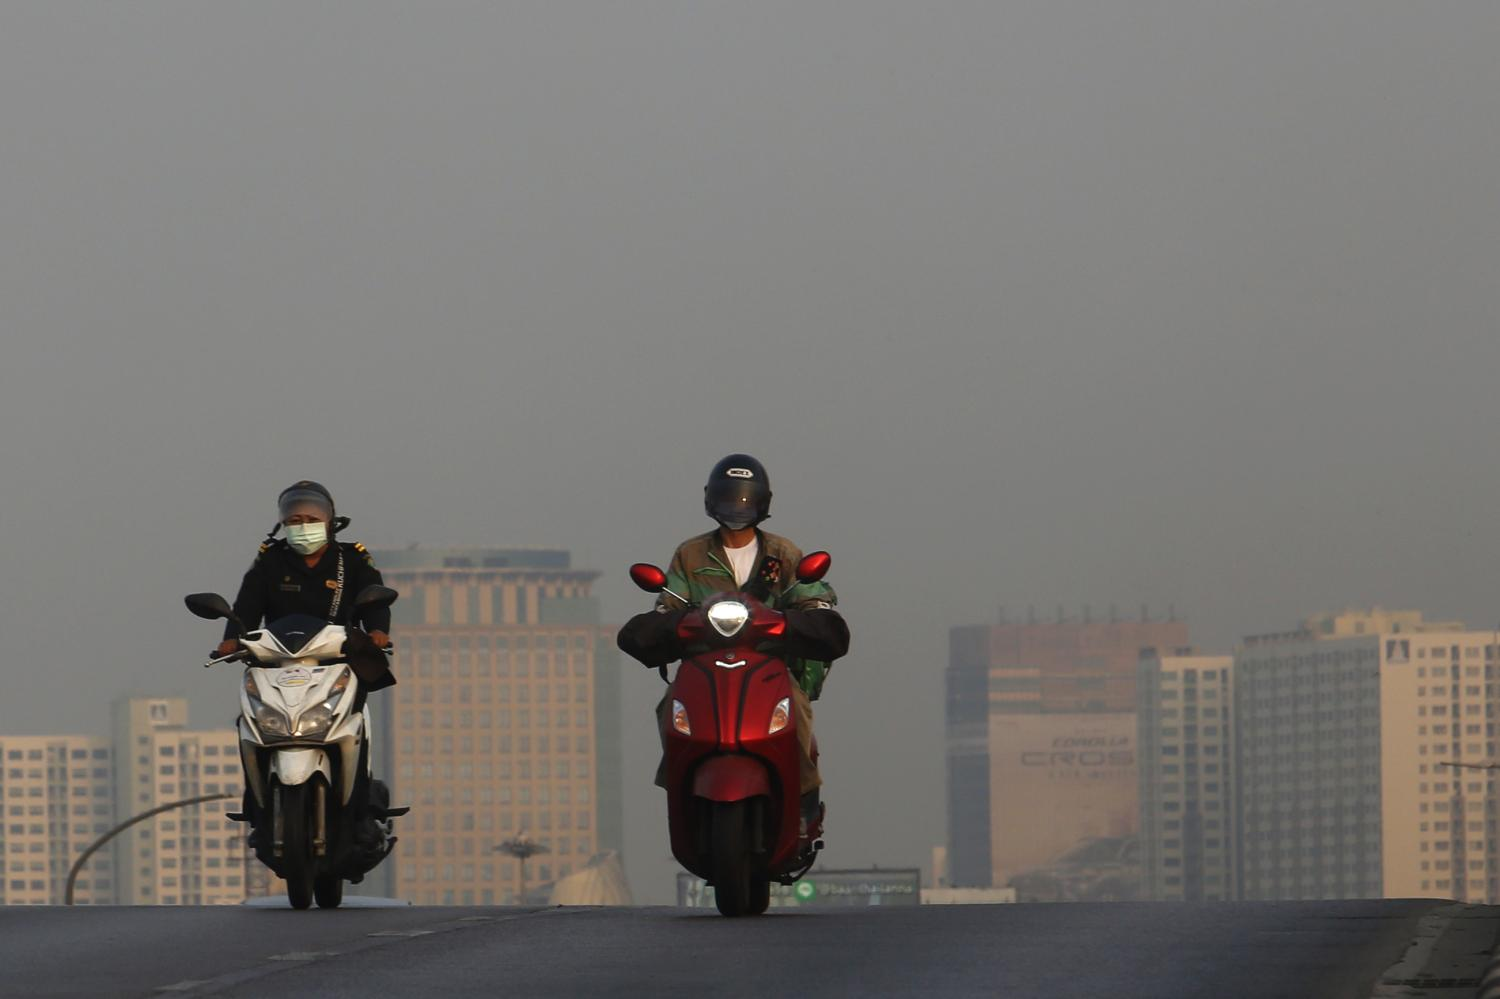 Haze fight needs new approach, say experts